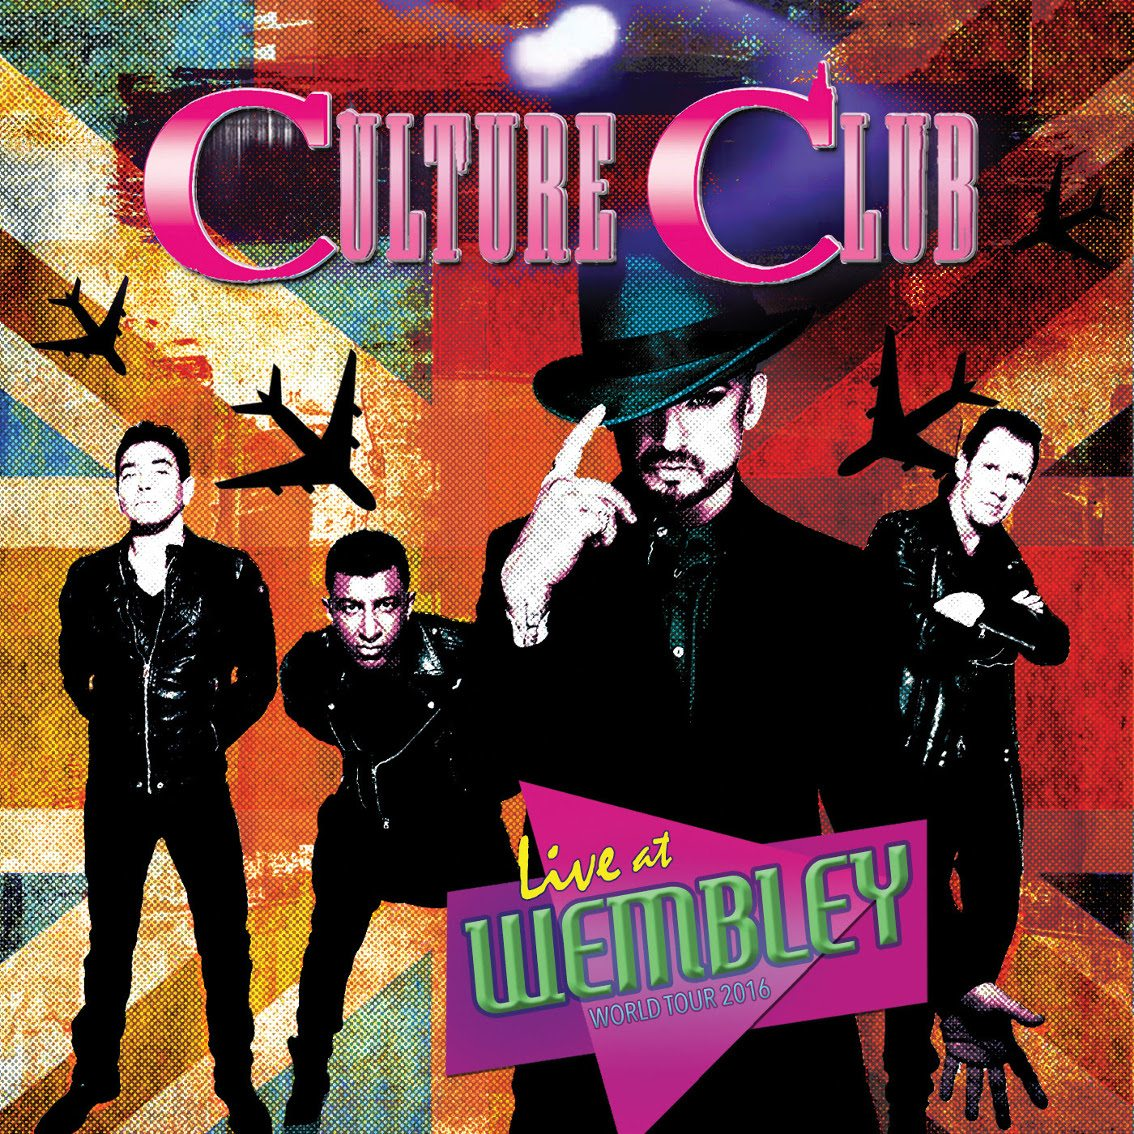 Culture Club sees 2016'Live At Wembley' show with original line-up released on various formats